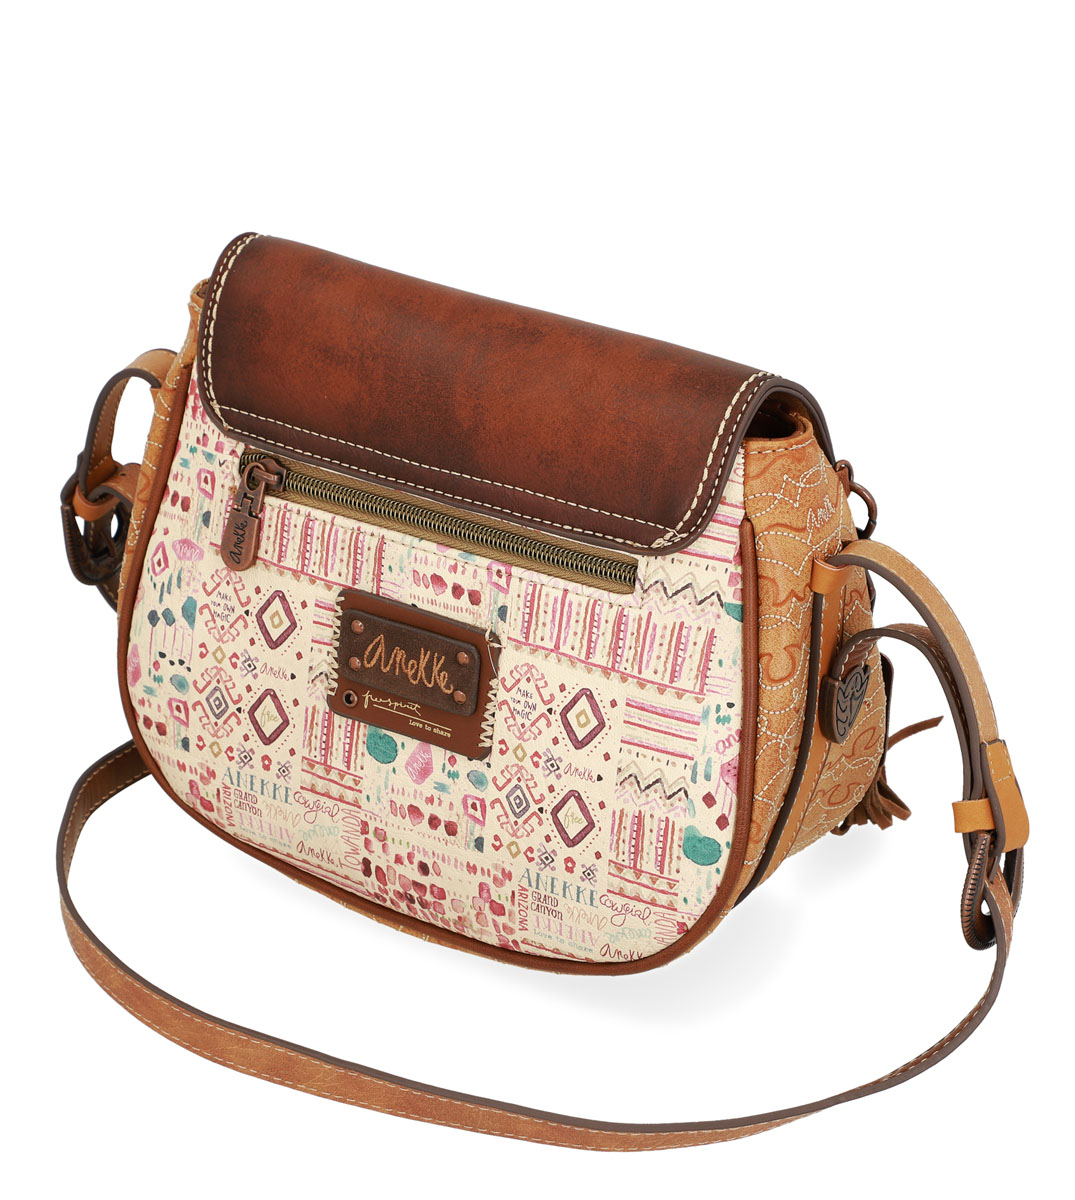 Anekke brown crossbody handbag Arizona